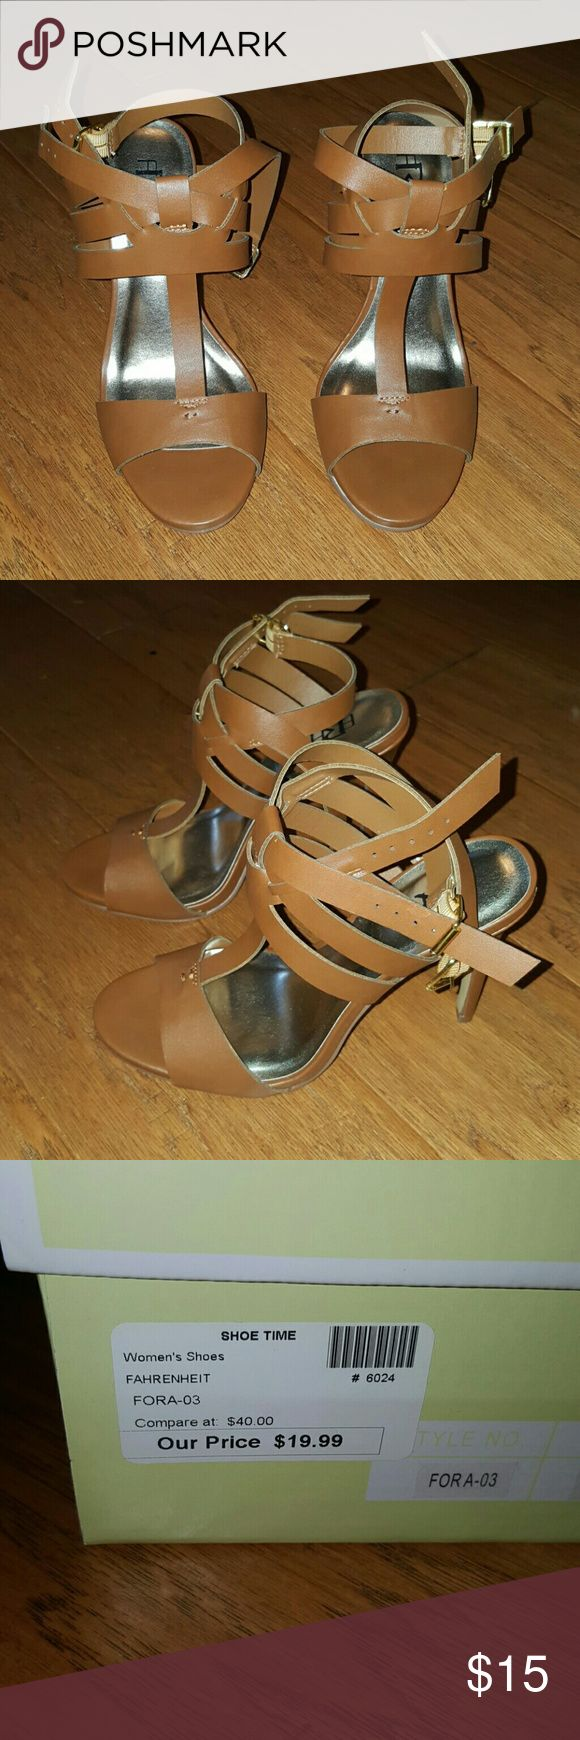 Brown strappy high heels Cute brown strappy 4 inch high heels. Great condition. Nice with jeans or dresses Shoes Heels